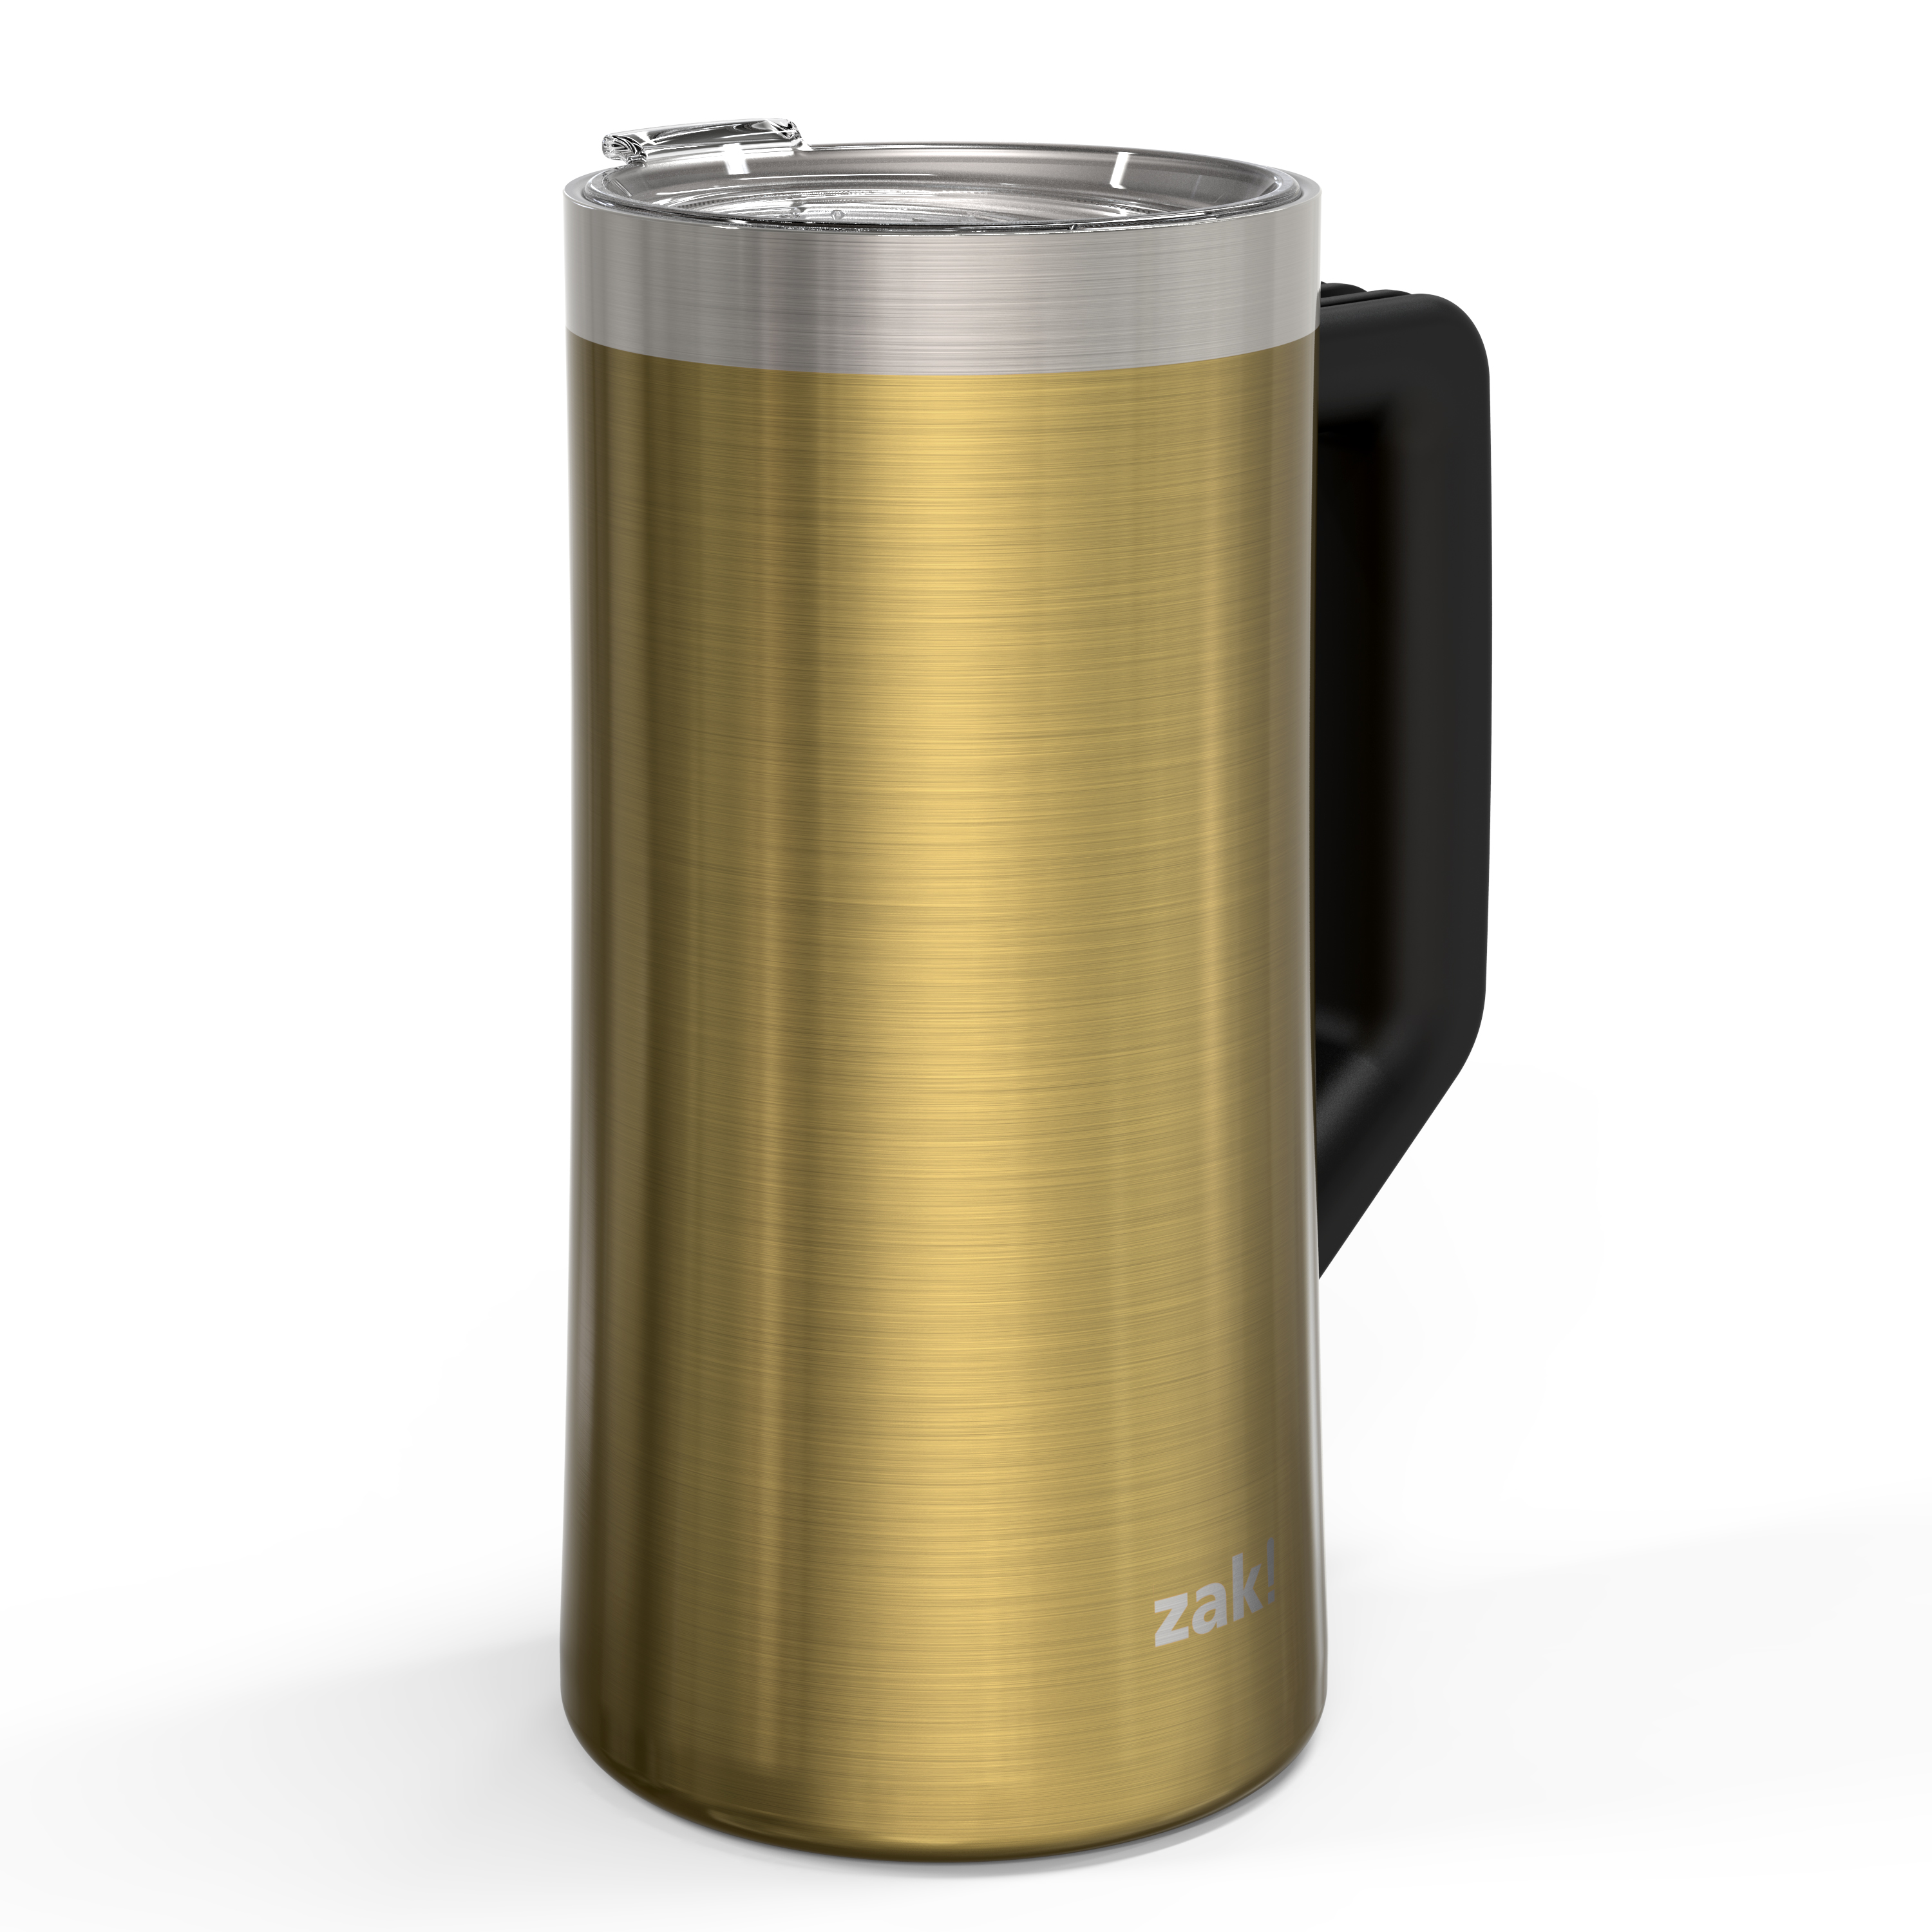 Creston 25 ounce Vacuum Insulated Stainless Steel Tumbler, Gold slideshow image 2